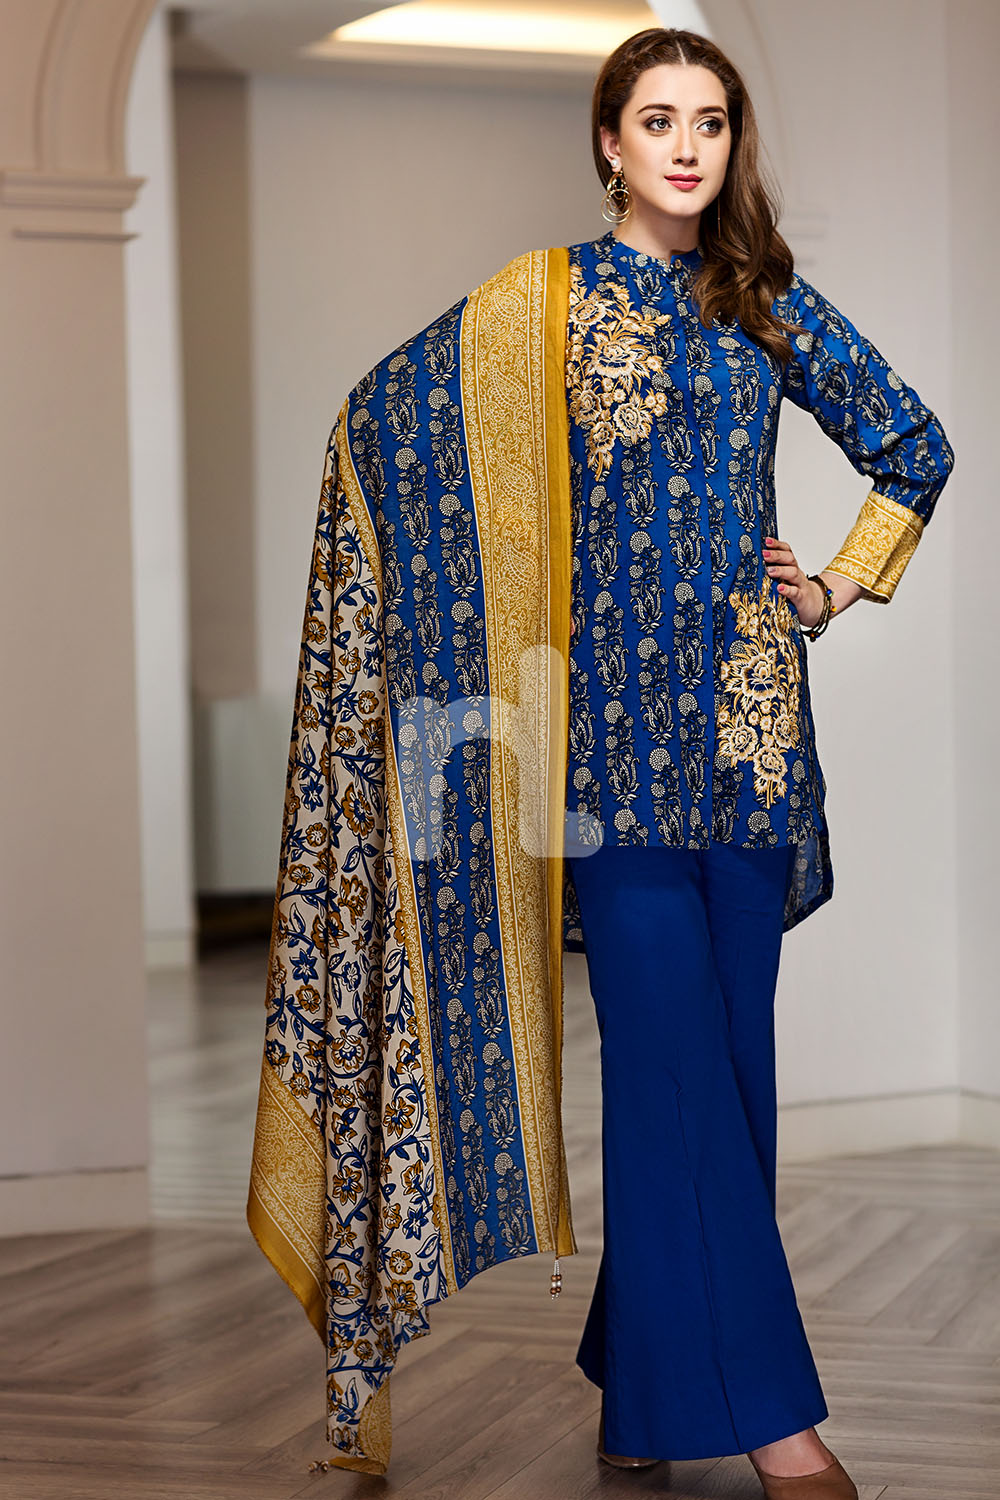 ae4a1211a2b ... dress price by Nishat Linen new collection 2018 Graceful Pakistani  embroidered Blue 2 piece unstitched pret by Nishat Linen new collection 2018